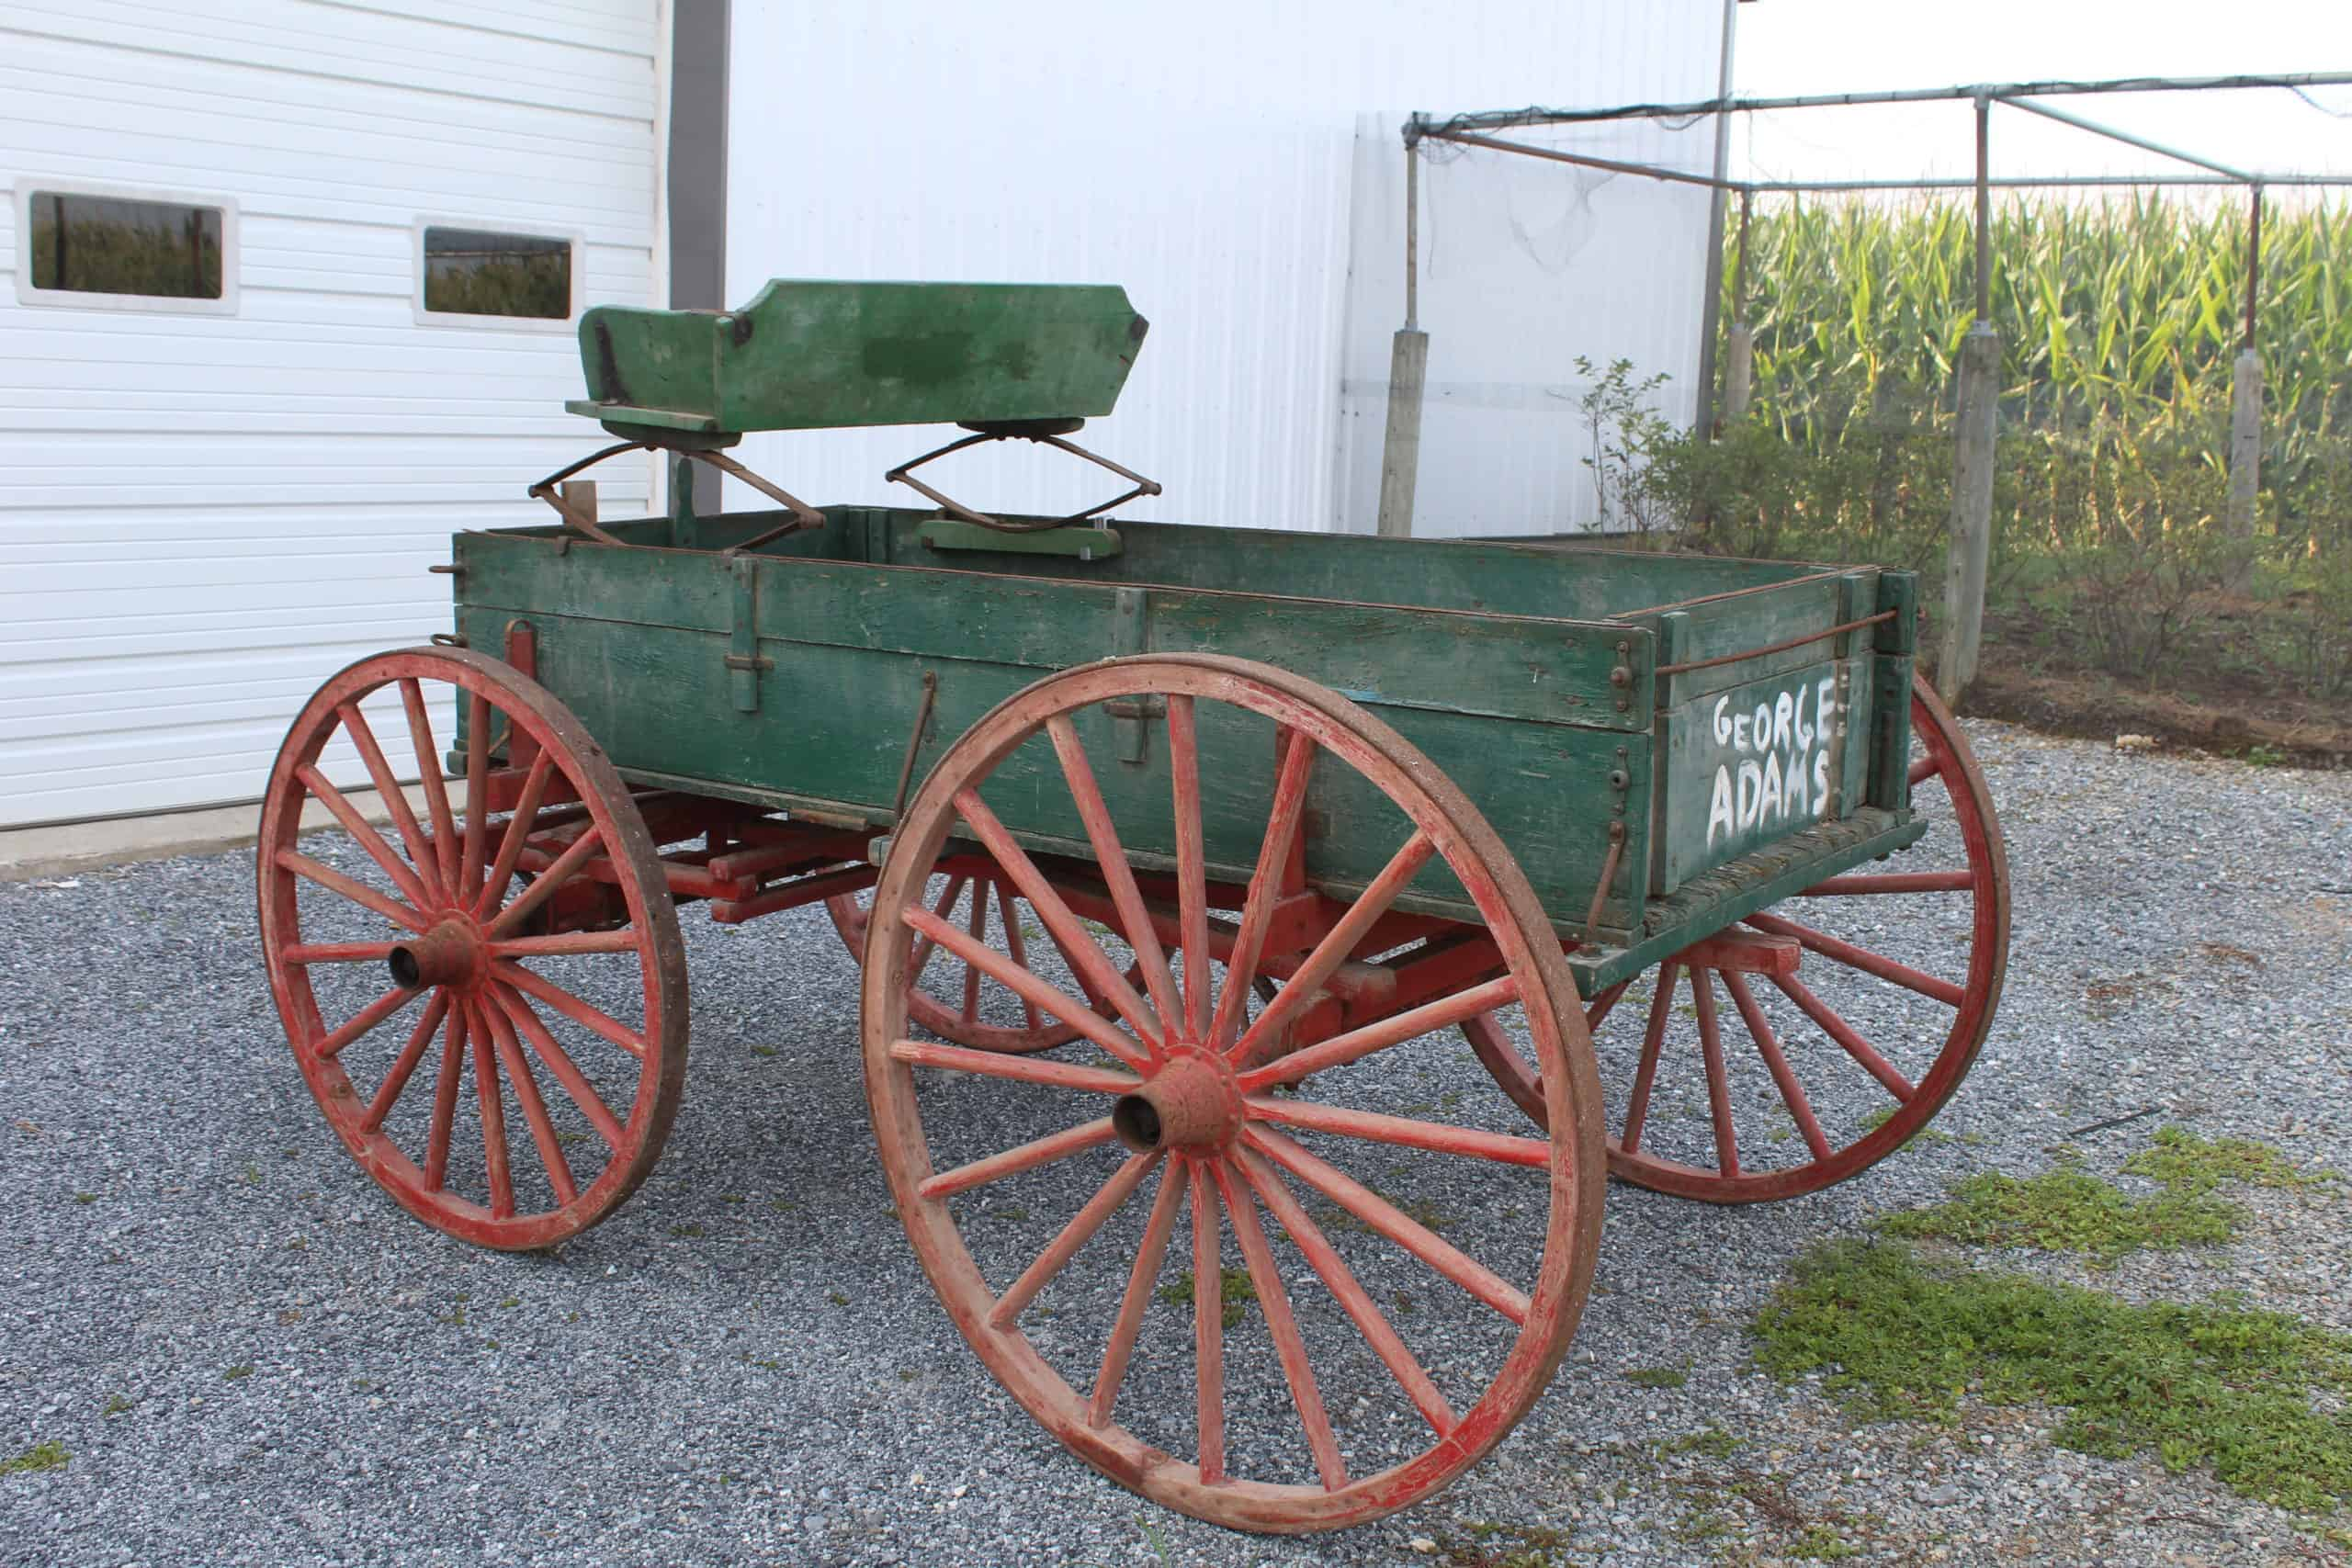 "#601 1-Horse Farm Wagon, Red Wheels, Green Body, Bed Size, 38"" Wide x 7' Long, Spring Seat, Shaft, Good Condition, $1050.00"